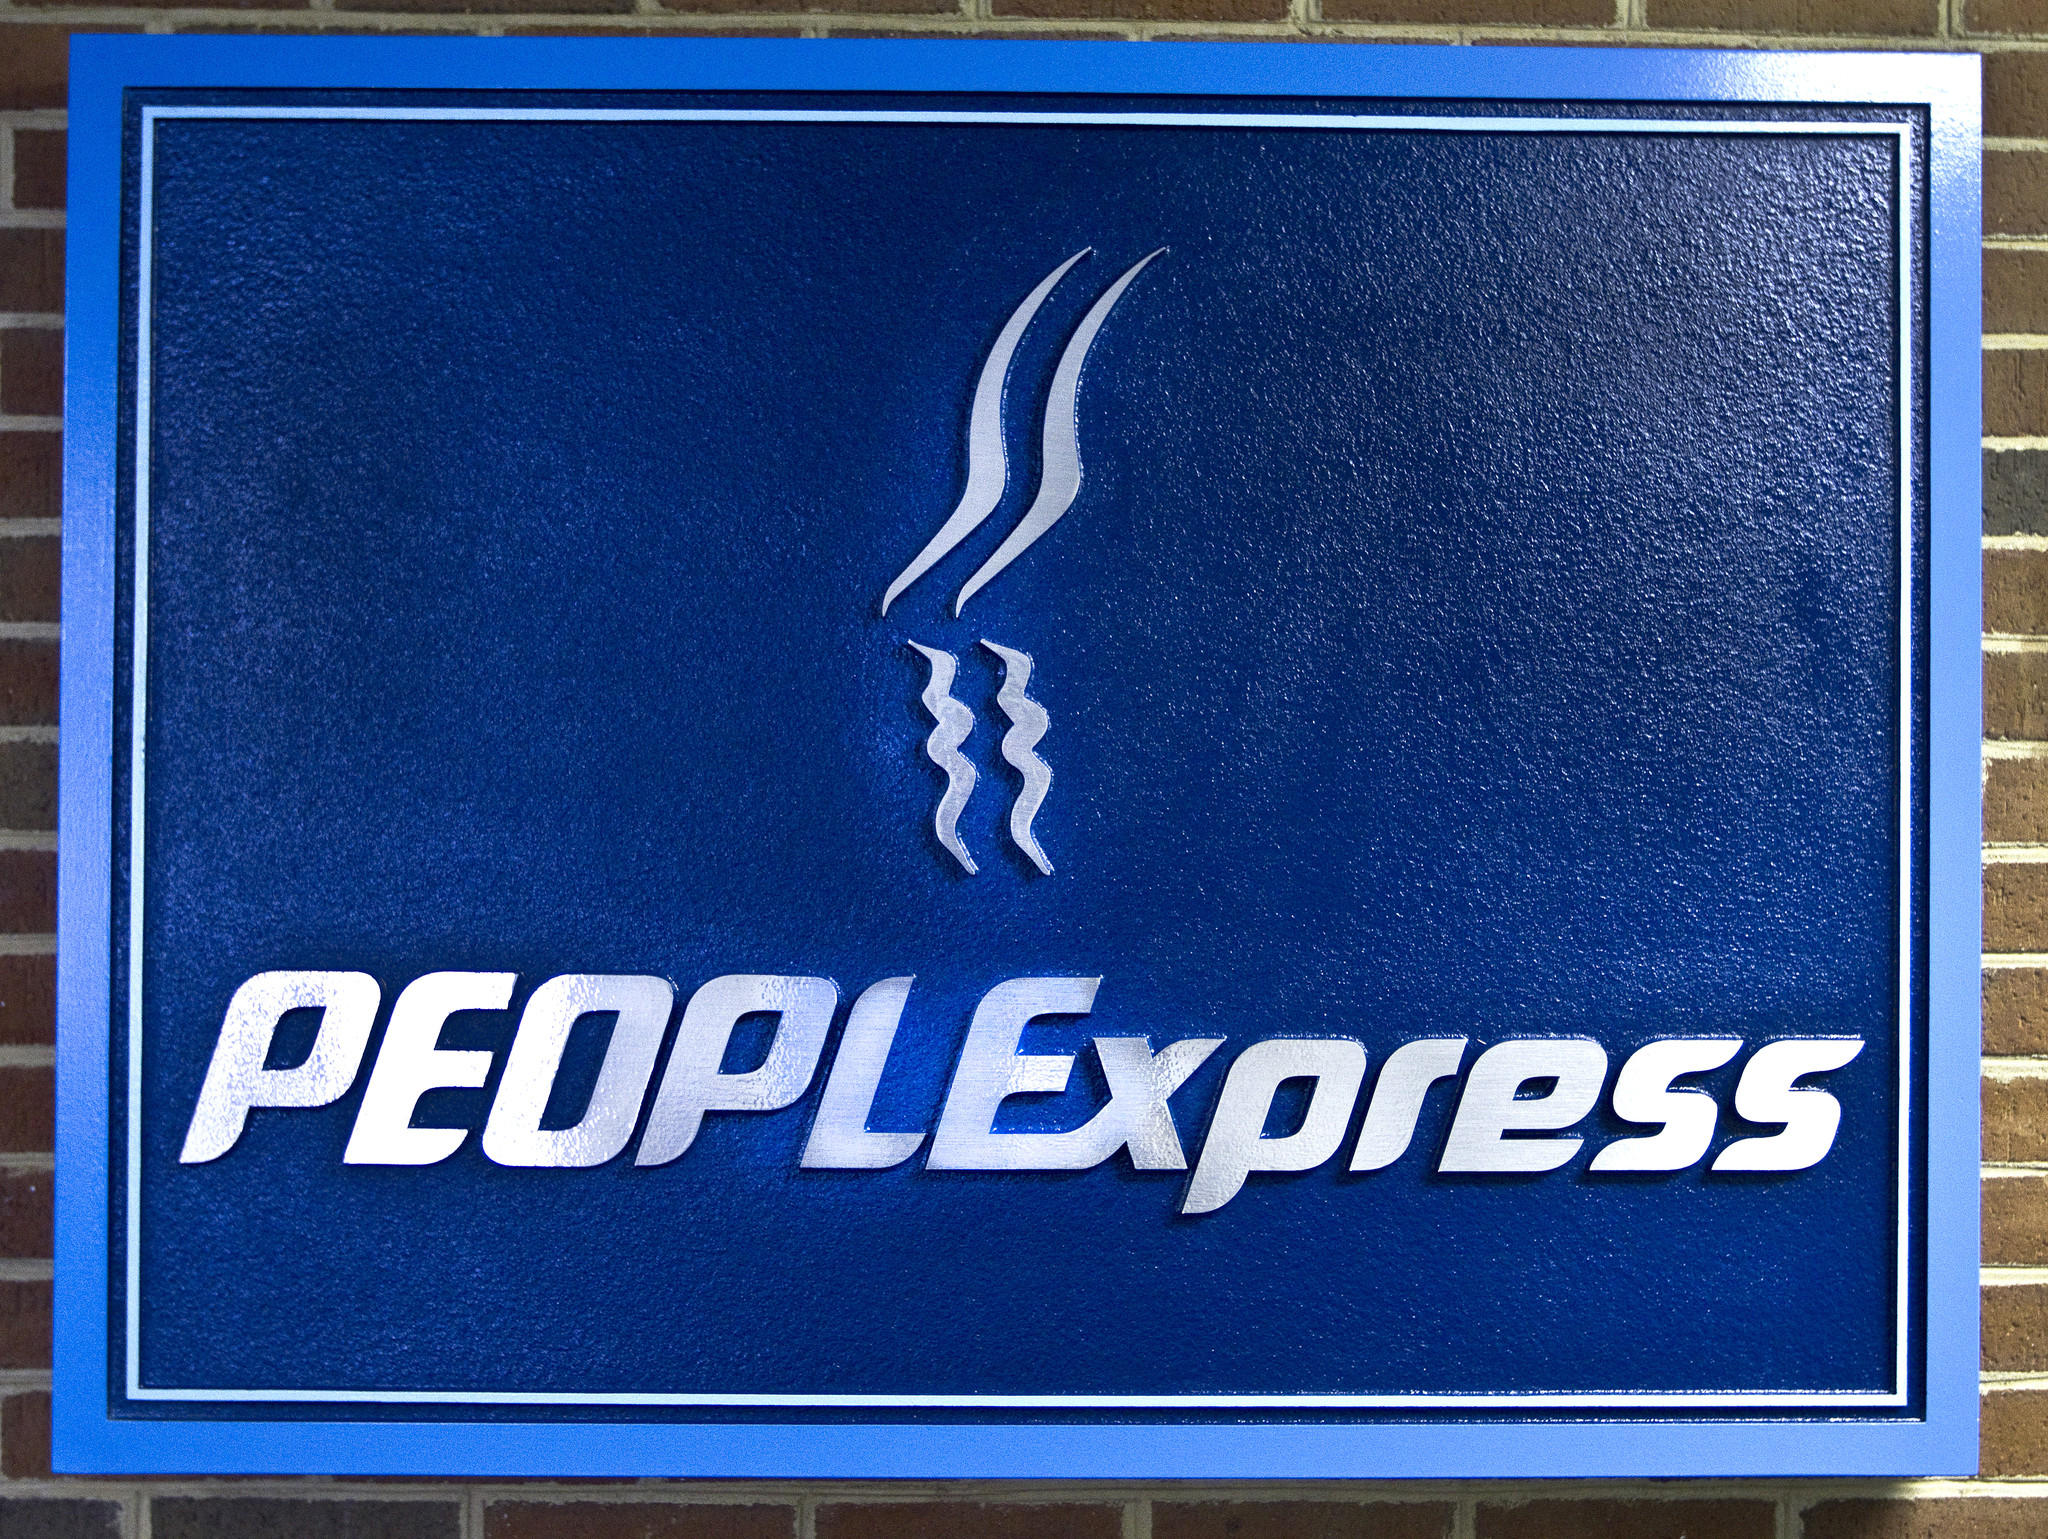 People's Express logo inside the old terminal building at Newport News/Williamsburg Airport.